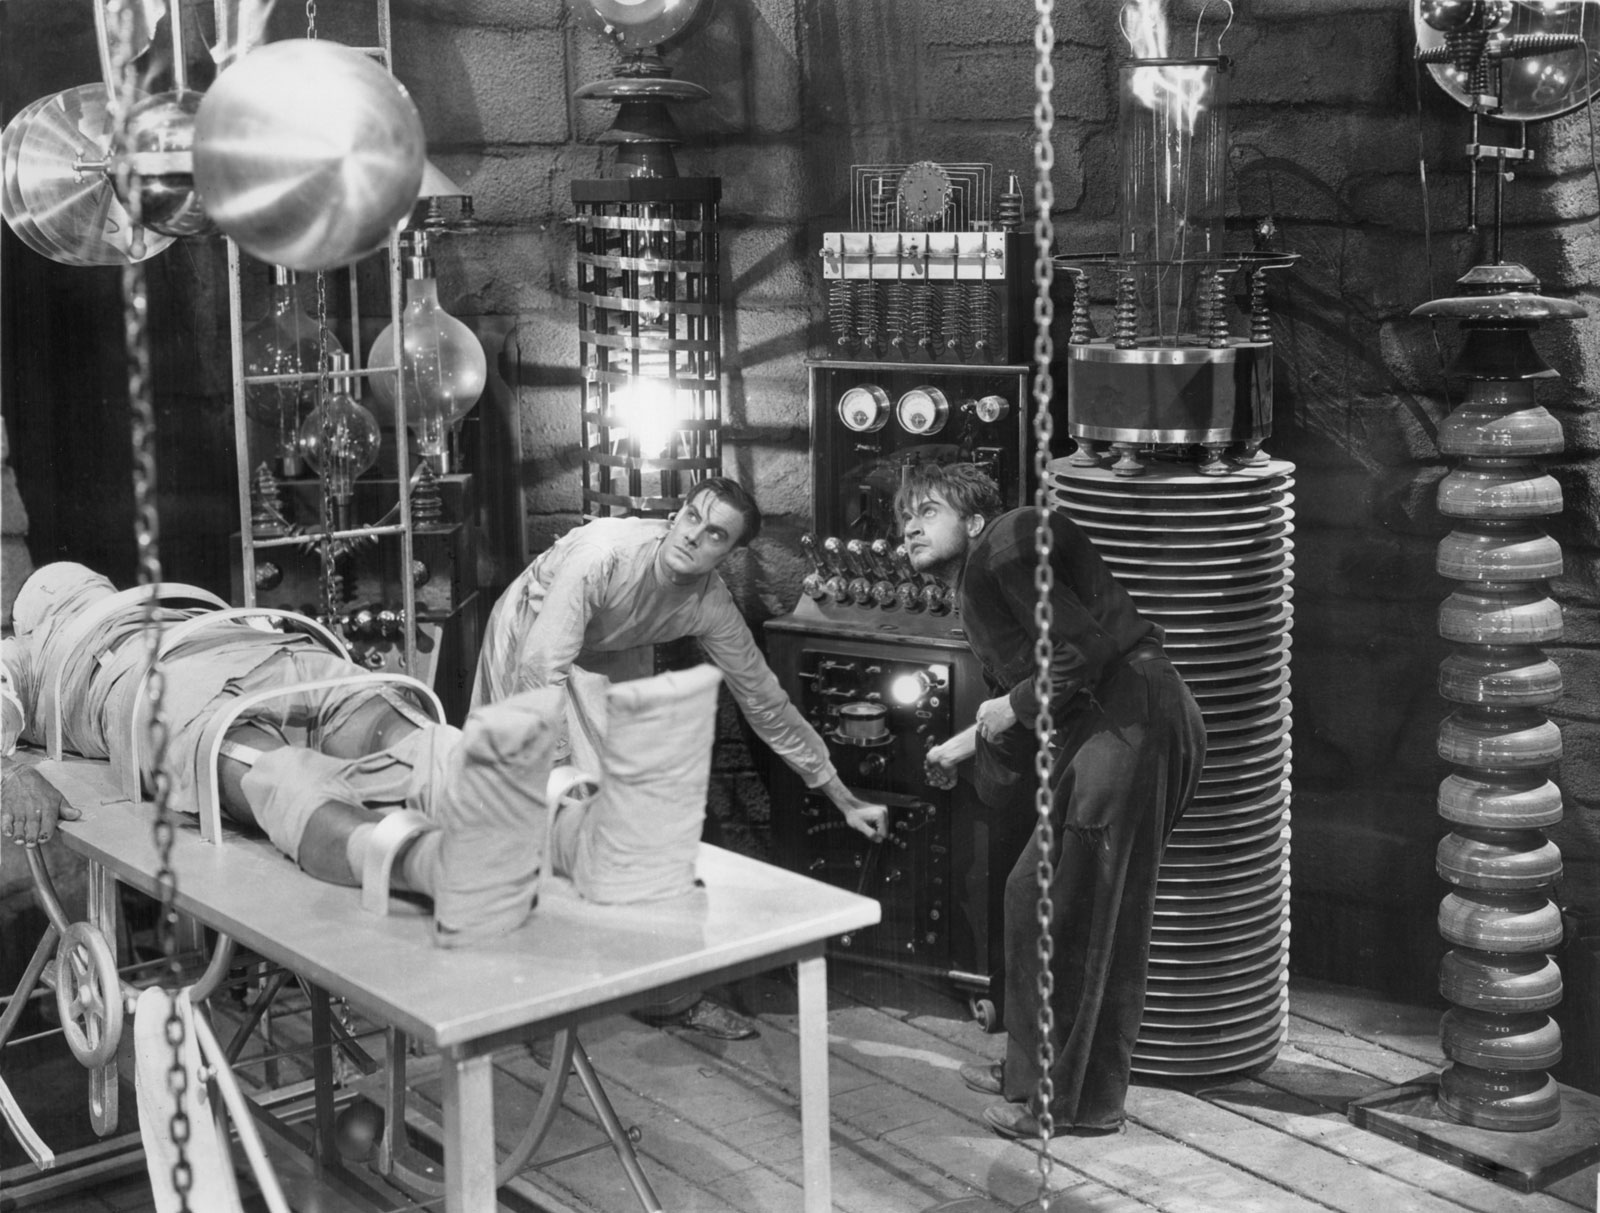 Victor Frankenstein and his assistant attempting to animate a corpse.